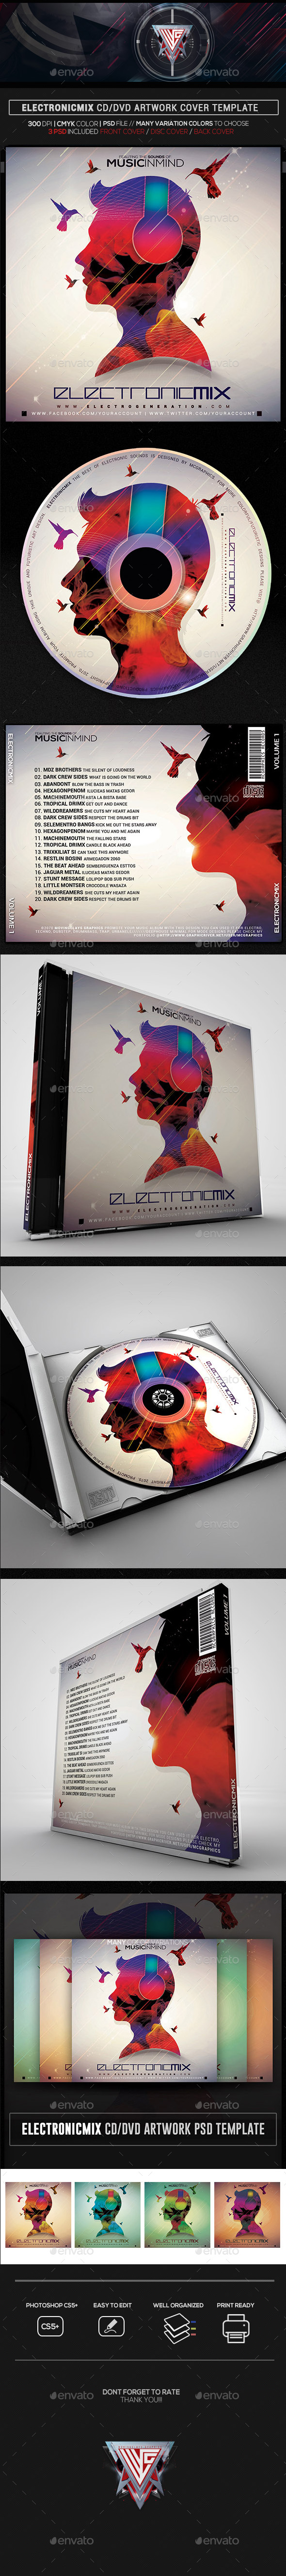 Music in Mind Electro Mix CD/DVD Template - CD & DVD Artwork Print Templates